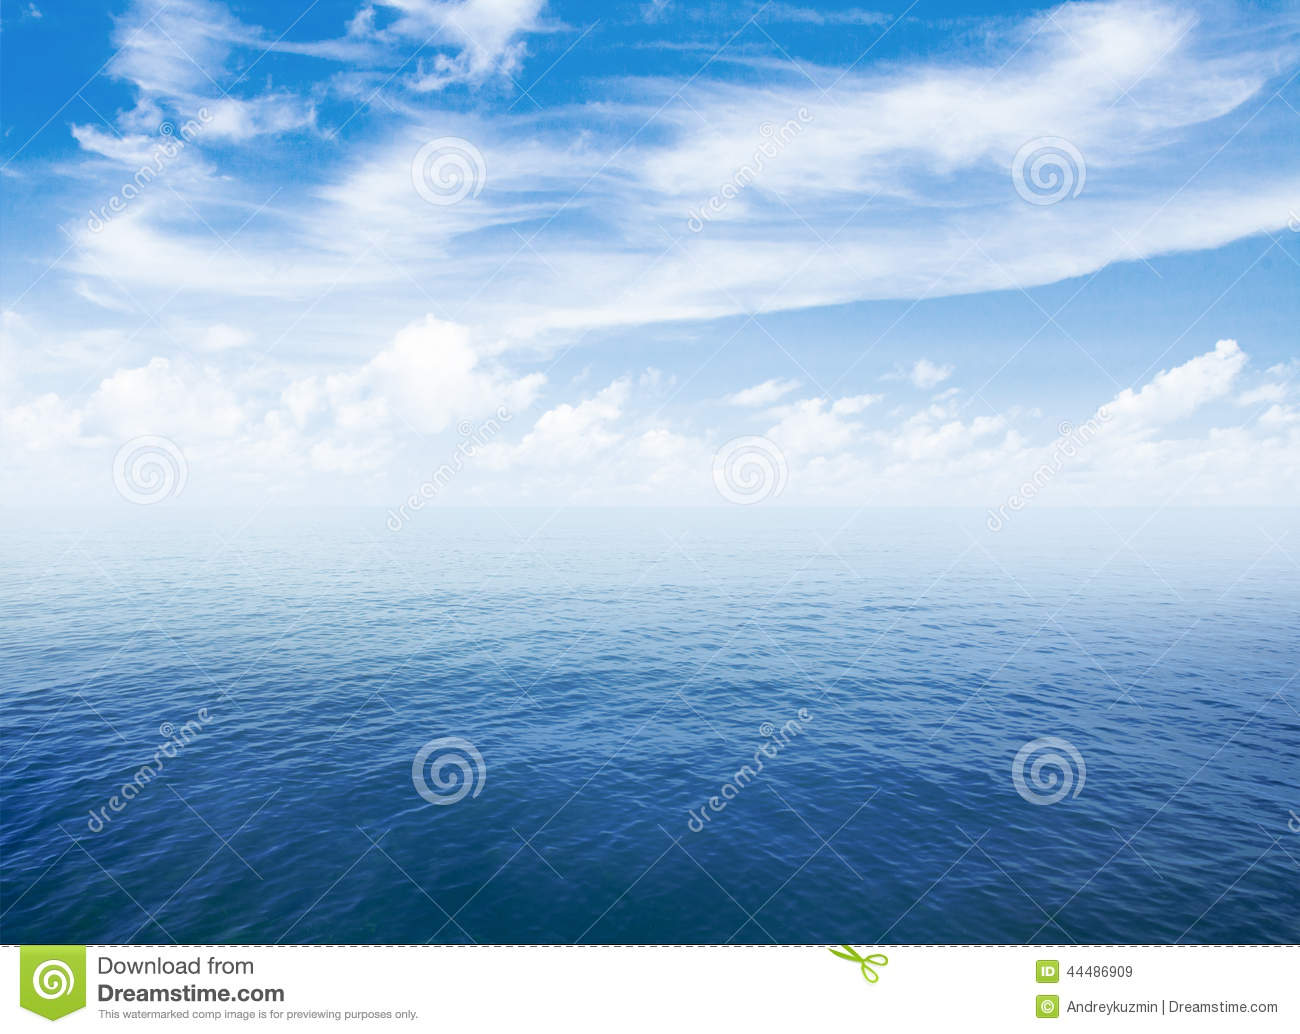 Blue sea or ocean water surface with horizon and sky